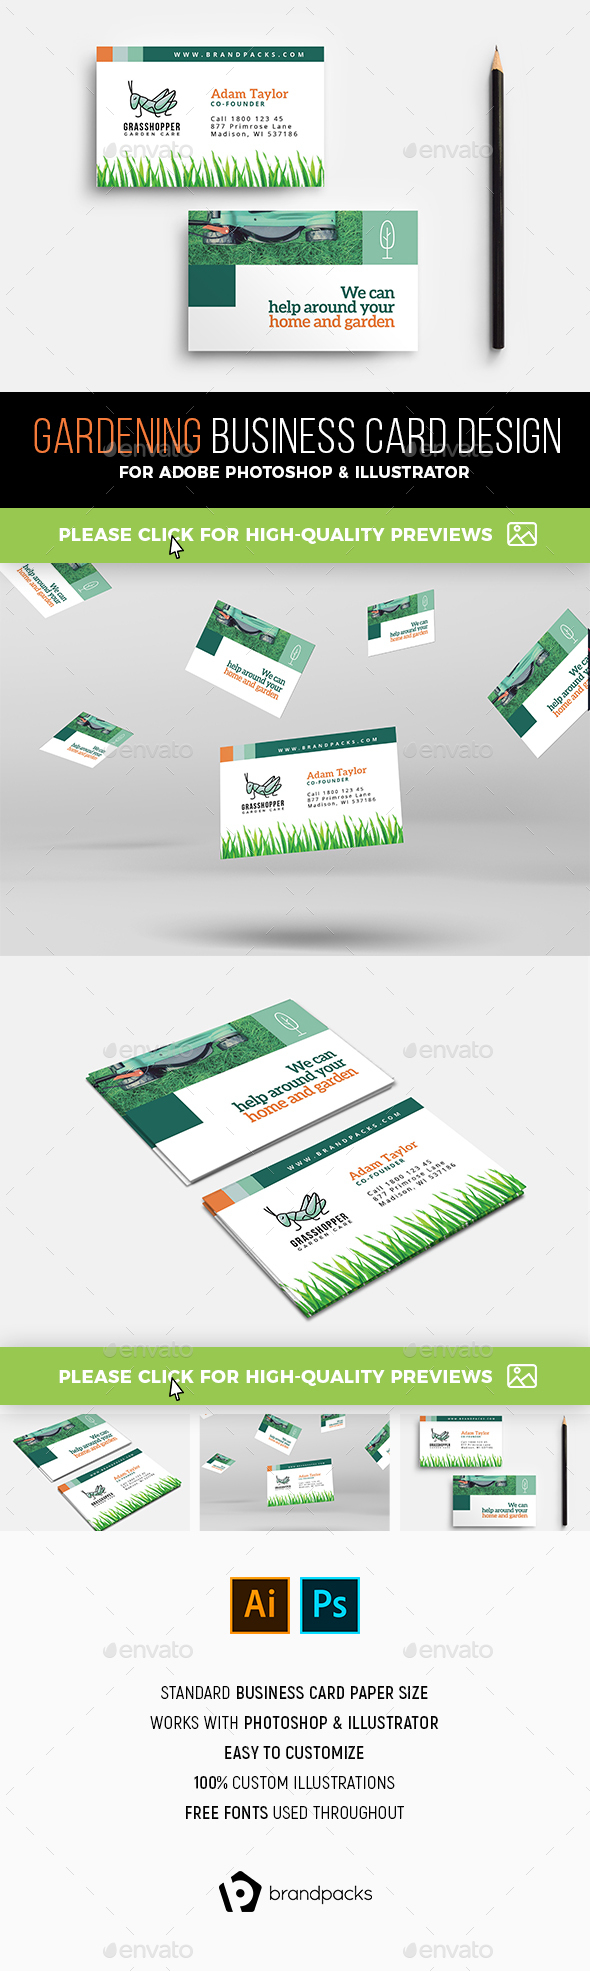 Gardening Business Card Templates & Designs From Graphicriver Throughout Gardening Business Cards Templates